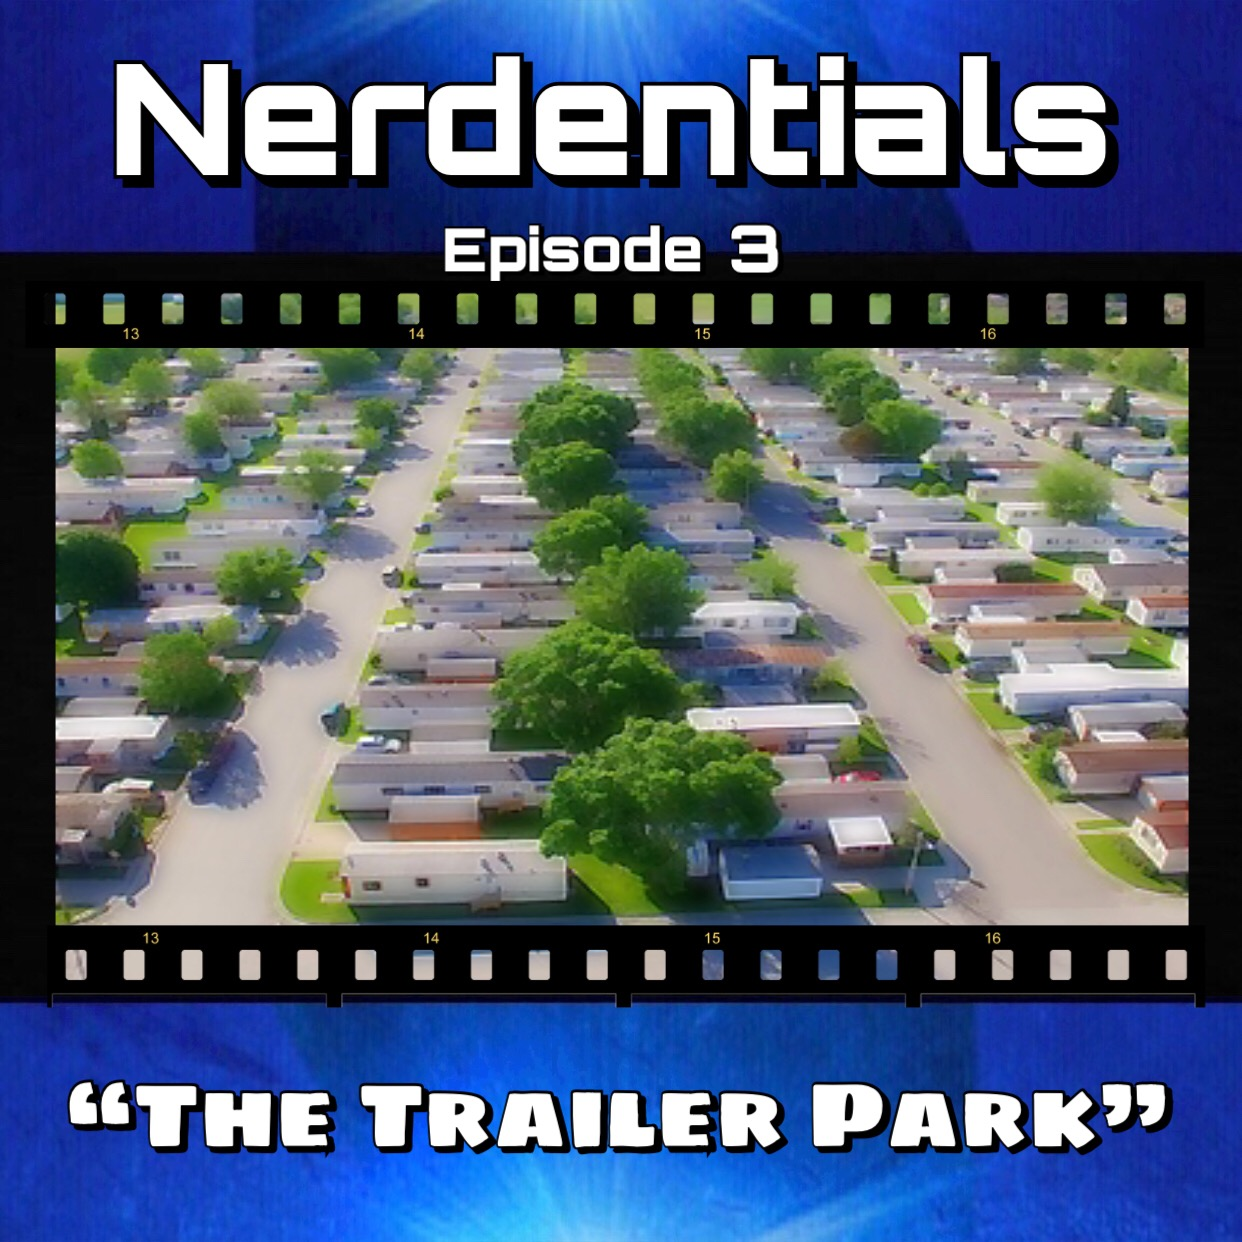 - Welcome to Nerdentials, your weekly dose of the nerdy essentials. Covering Film, TV, Video Games and Comics and whatever's new in Nerd and Geek Culture! A Boat load of trailers dropped this week so join us and our thoughts on said trailers as we ended up with a lot to say!